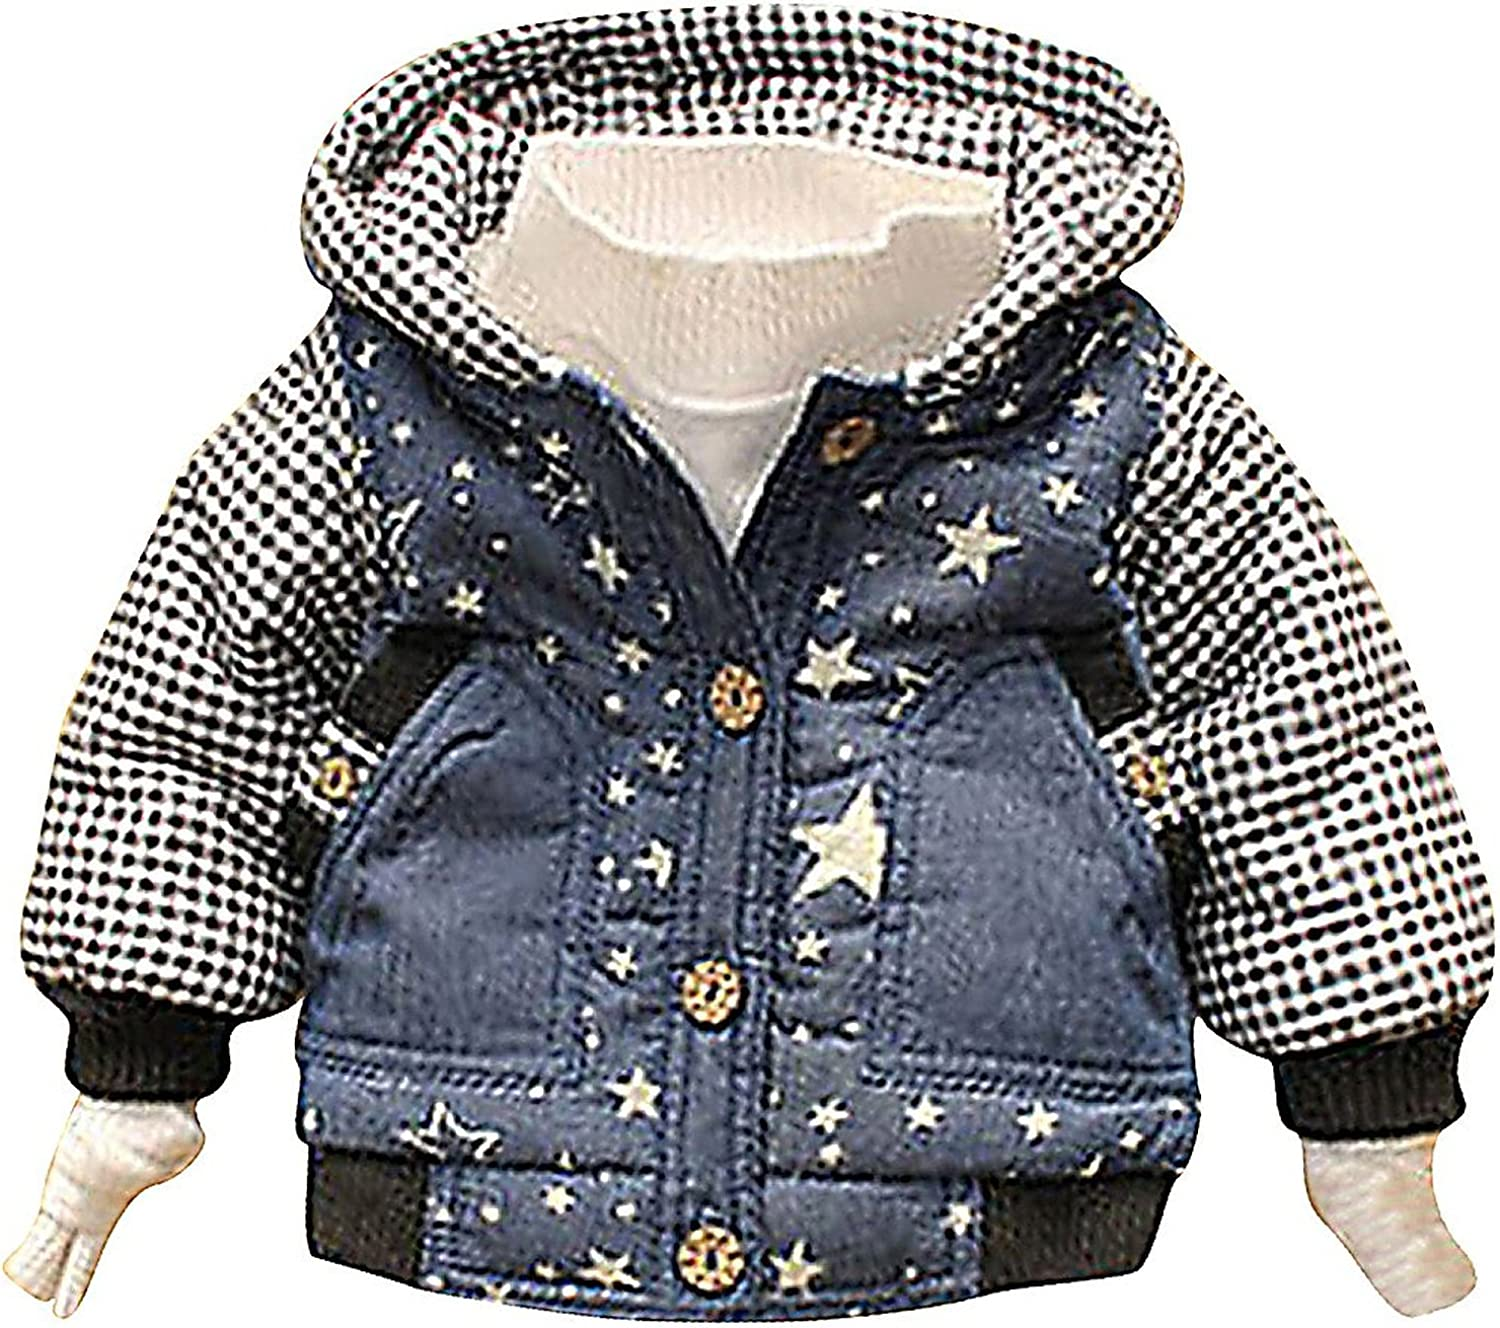 Sweety Baby Boy Plaid Hooded Jacket Lightweight Soft Warm Thick Stars Coat,Multicolored 13-18 Months